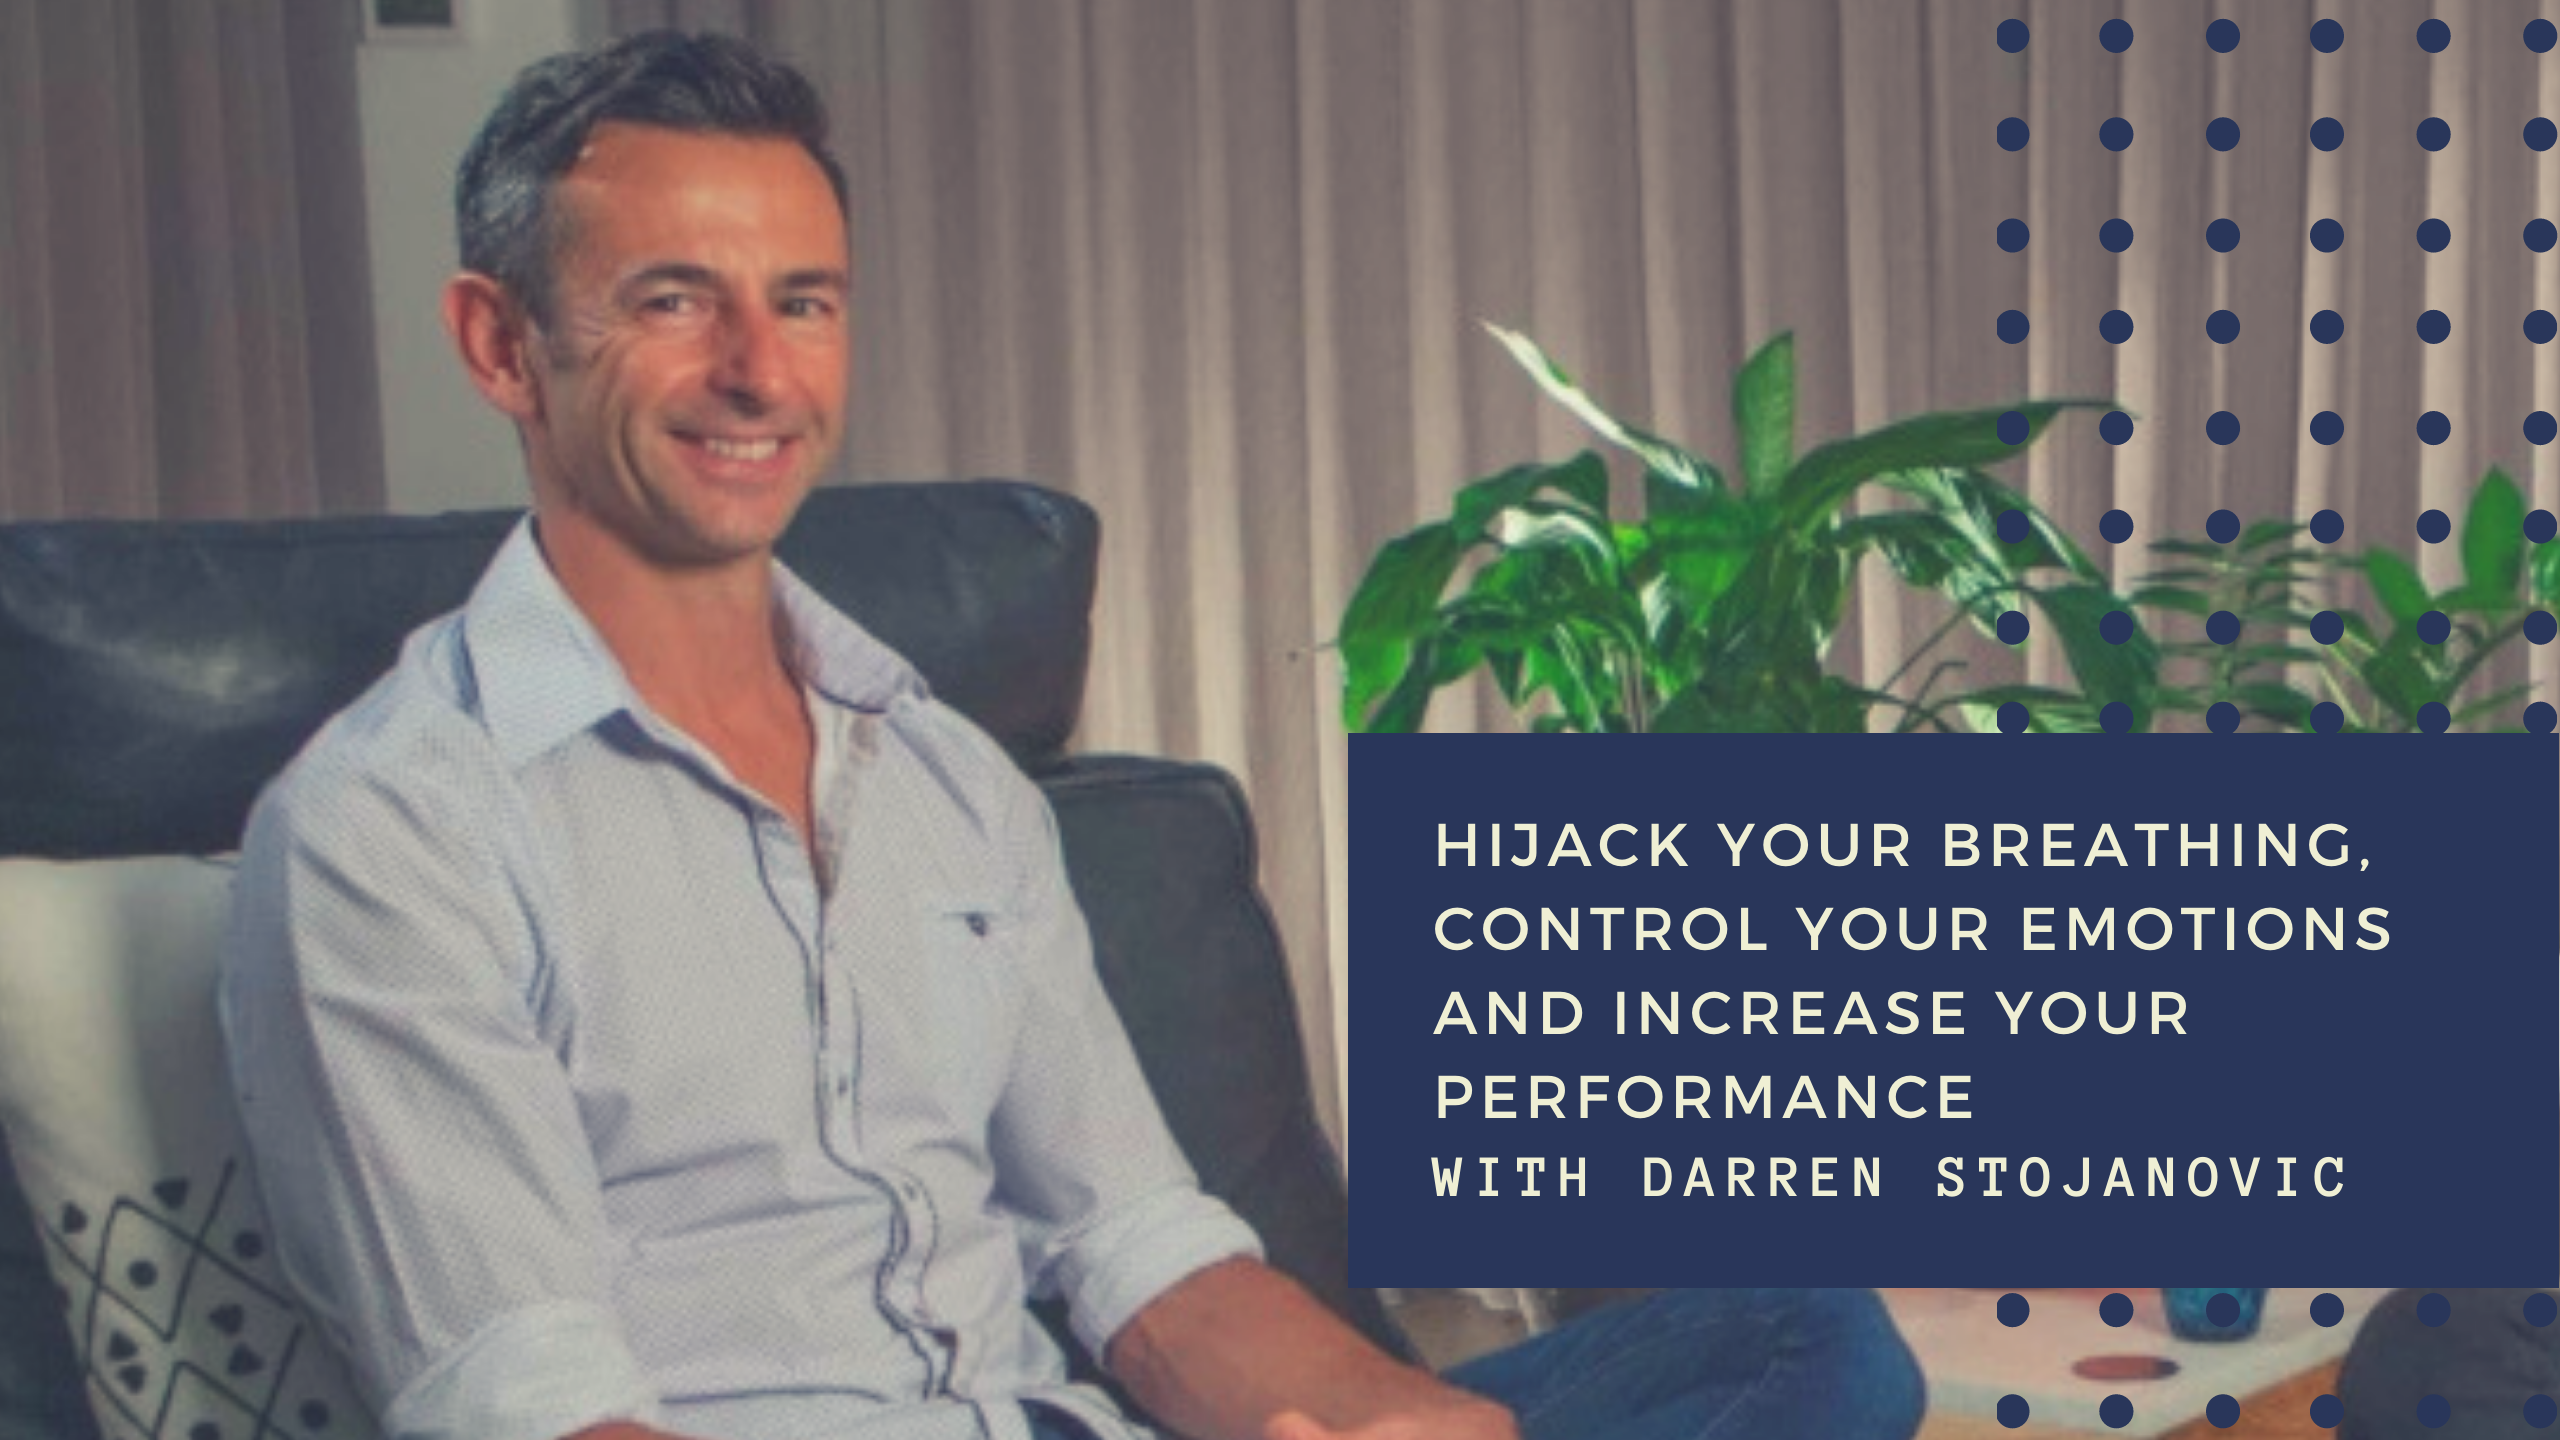 Hijack Your Breathing, Control Your Emotions And Increase Your Performance With Darren Stojanovic